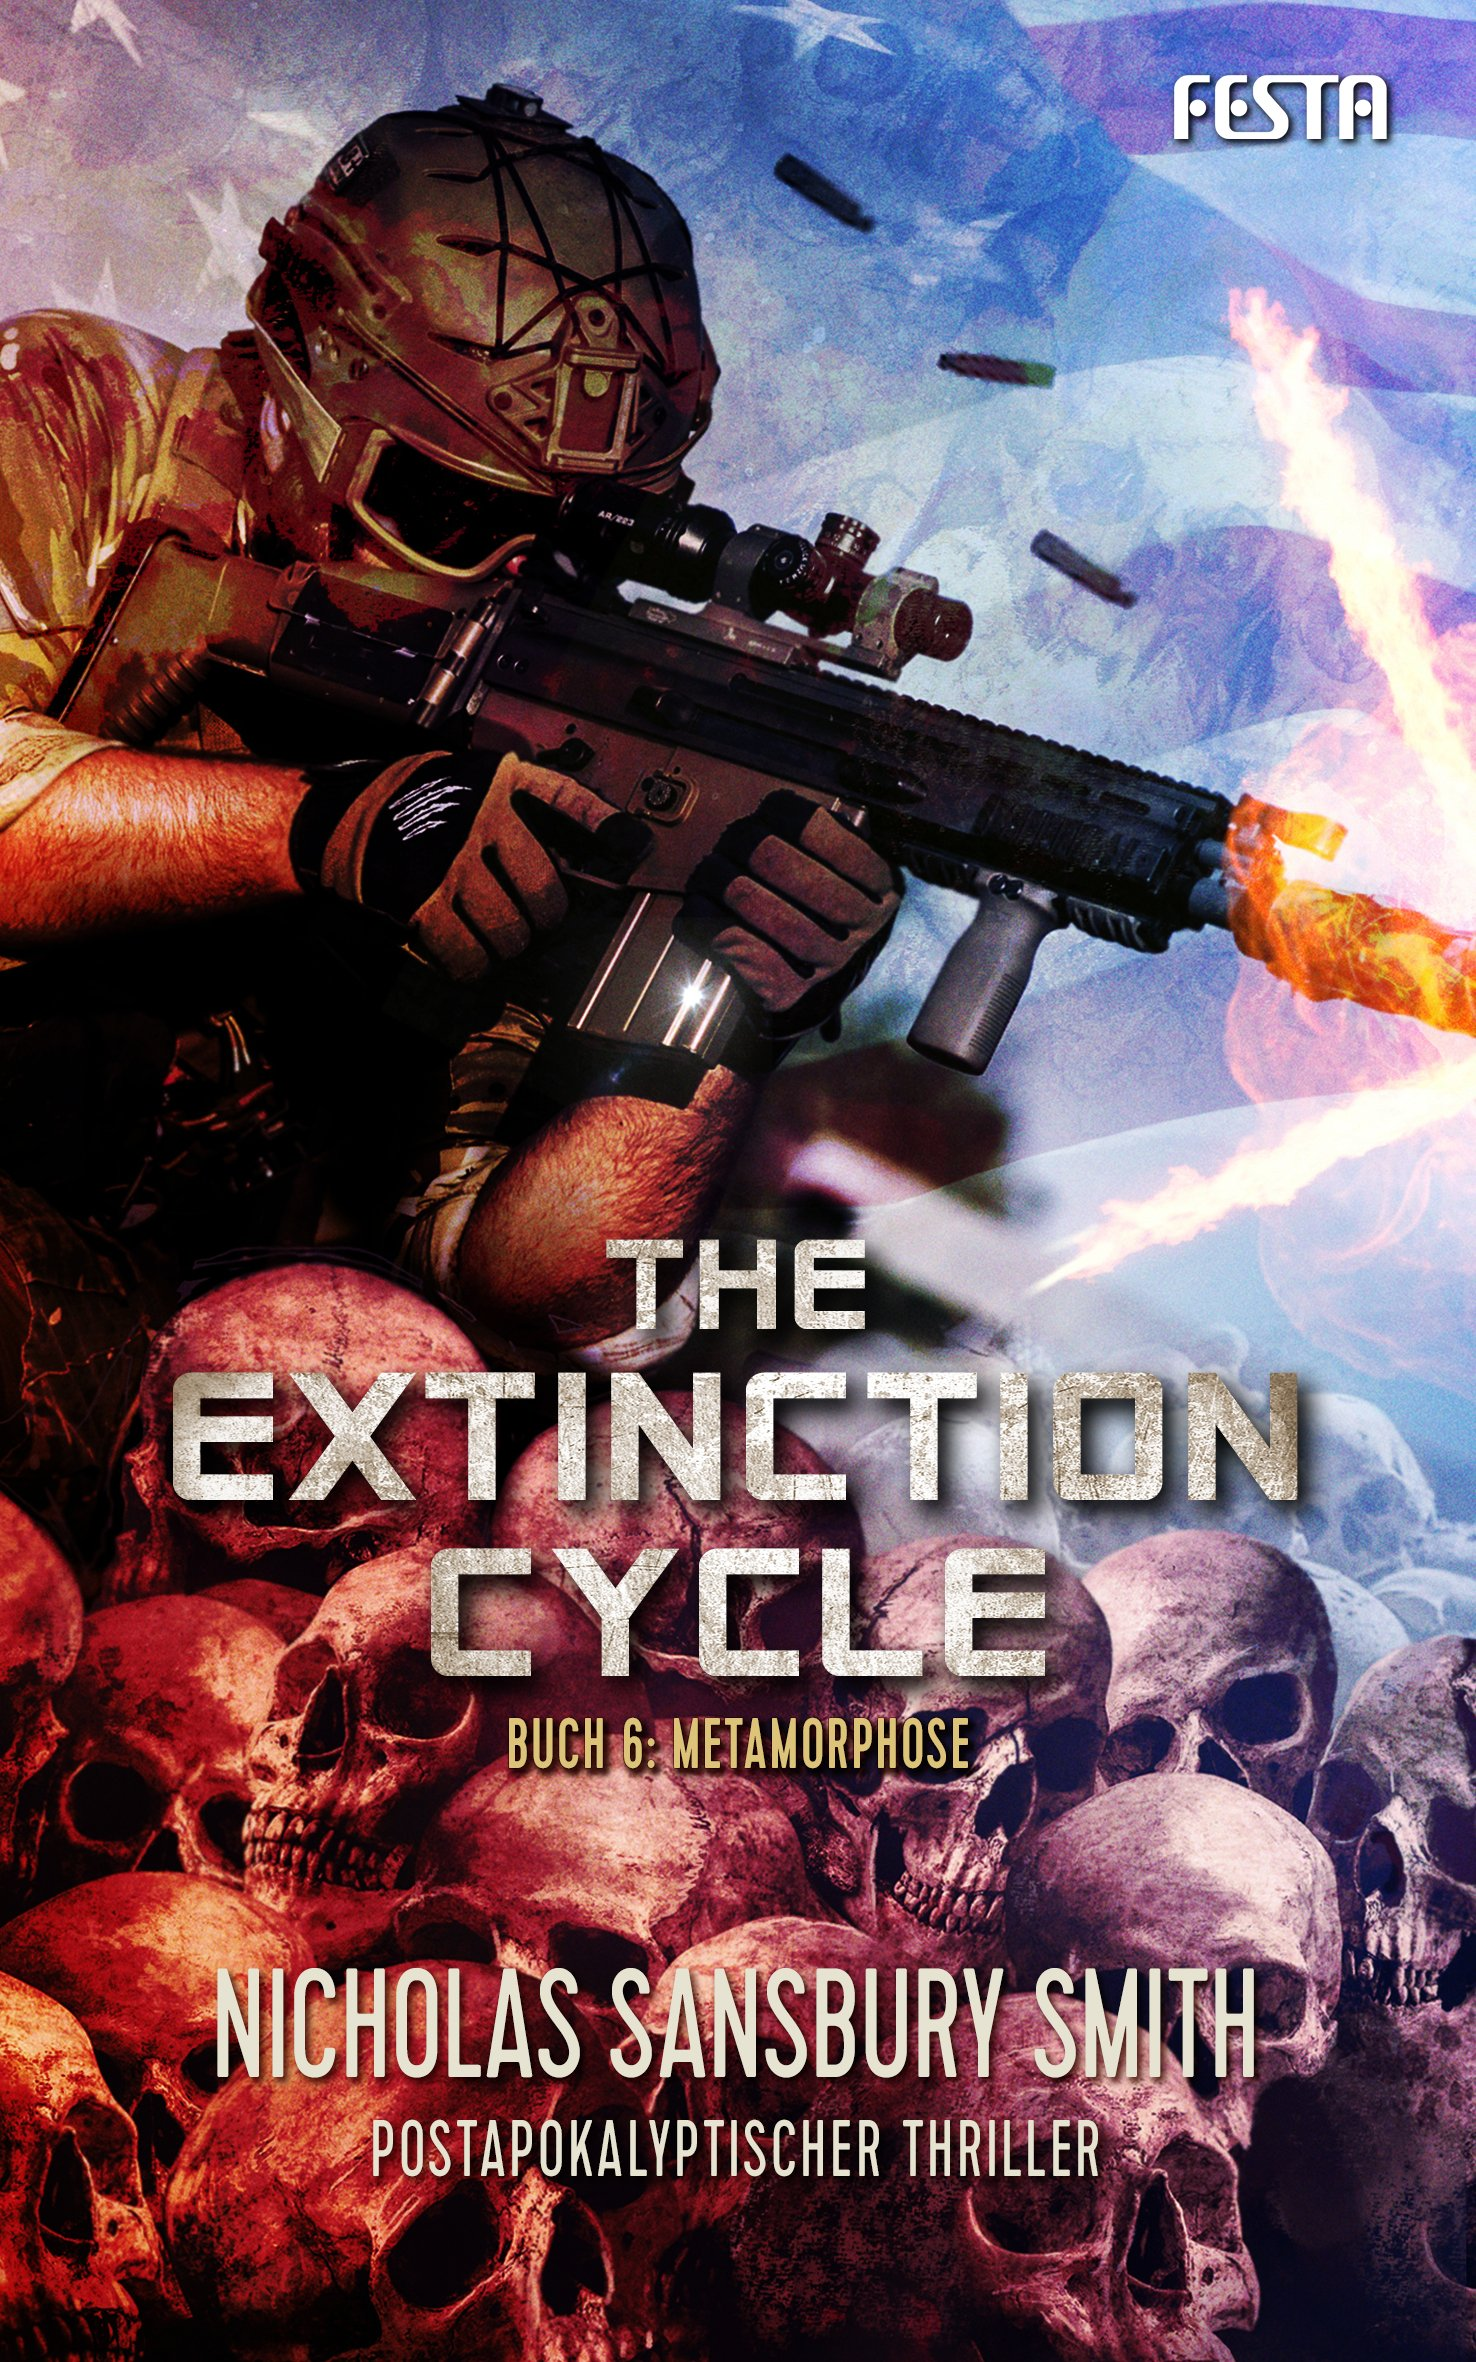 The Extinction Cycle - Buch 6: Metamorphose: Thriller